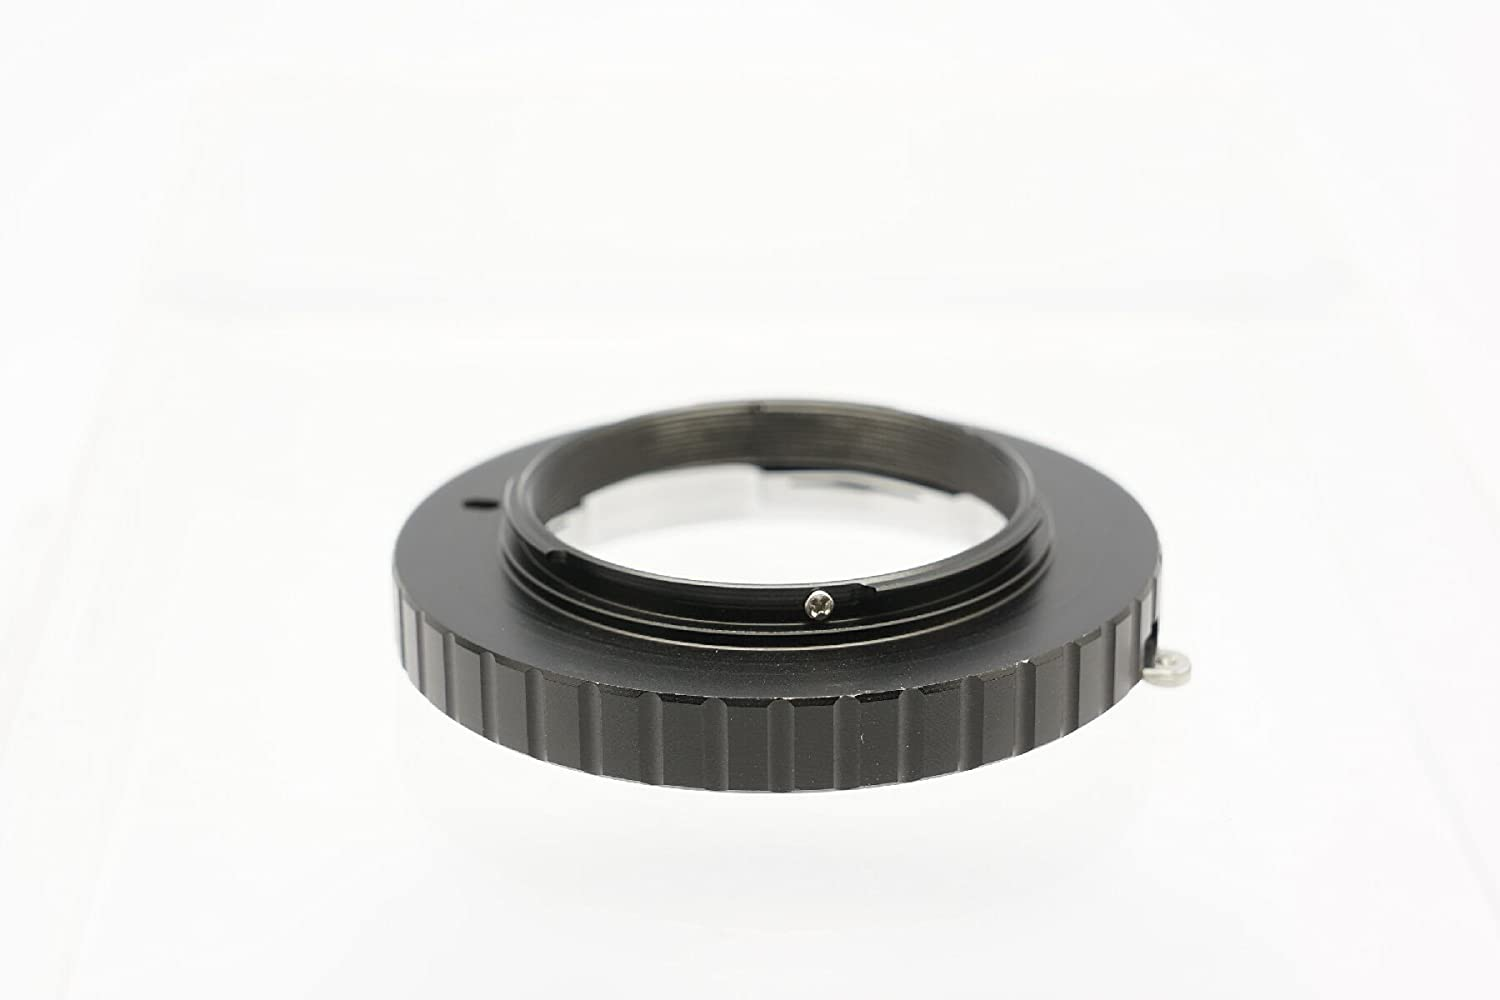 Gadget Place Leica M Lens Adapter for Olympus OM-D E-M5 II PEN E-PL7 E-P5 OM-D E-M10 OM-D E-M1 E-PL6 E-PL5